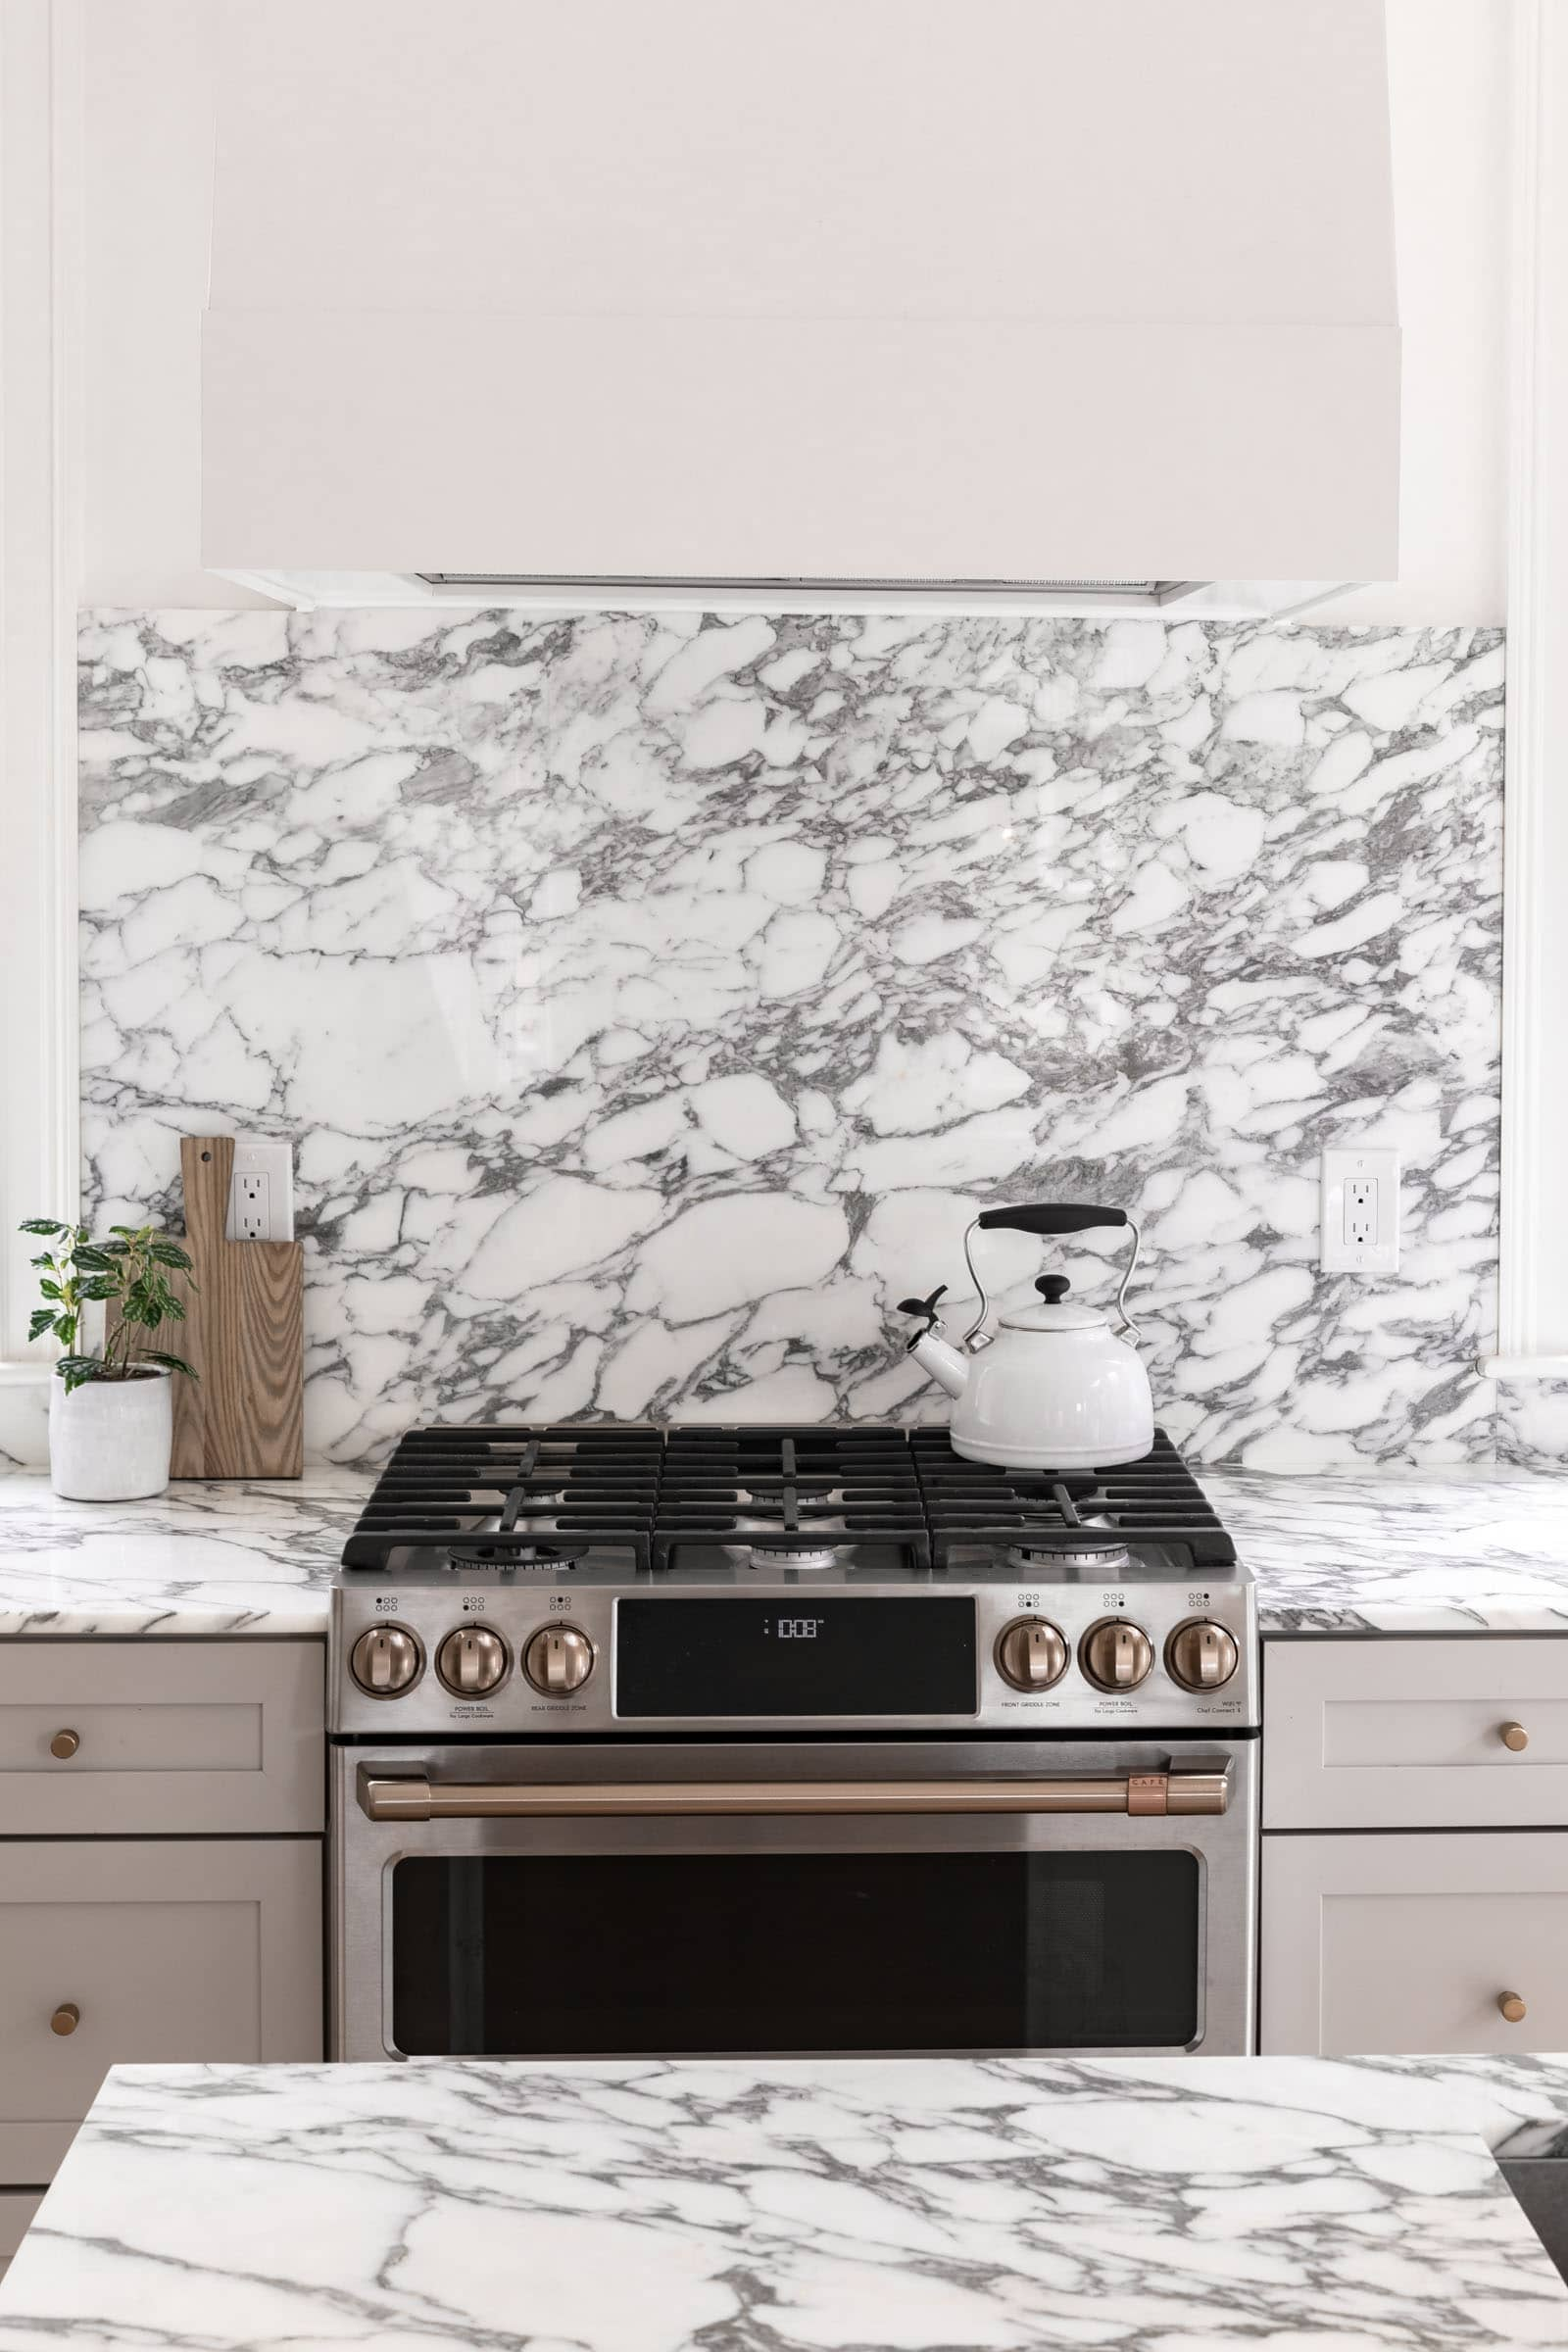 sleek cafe appliance stove in a marble kitchen